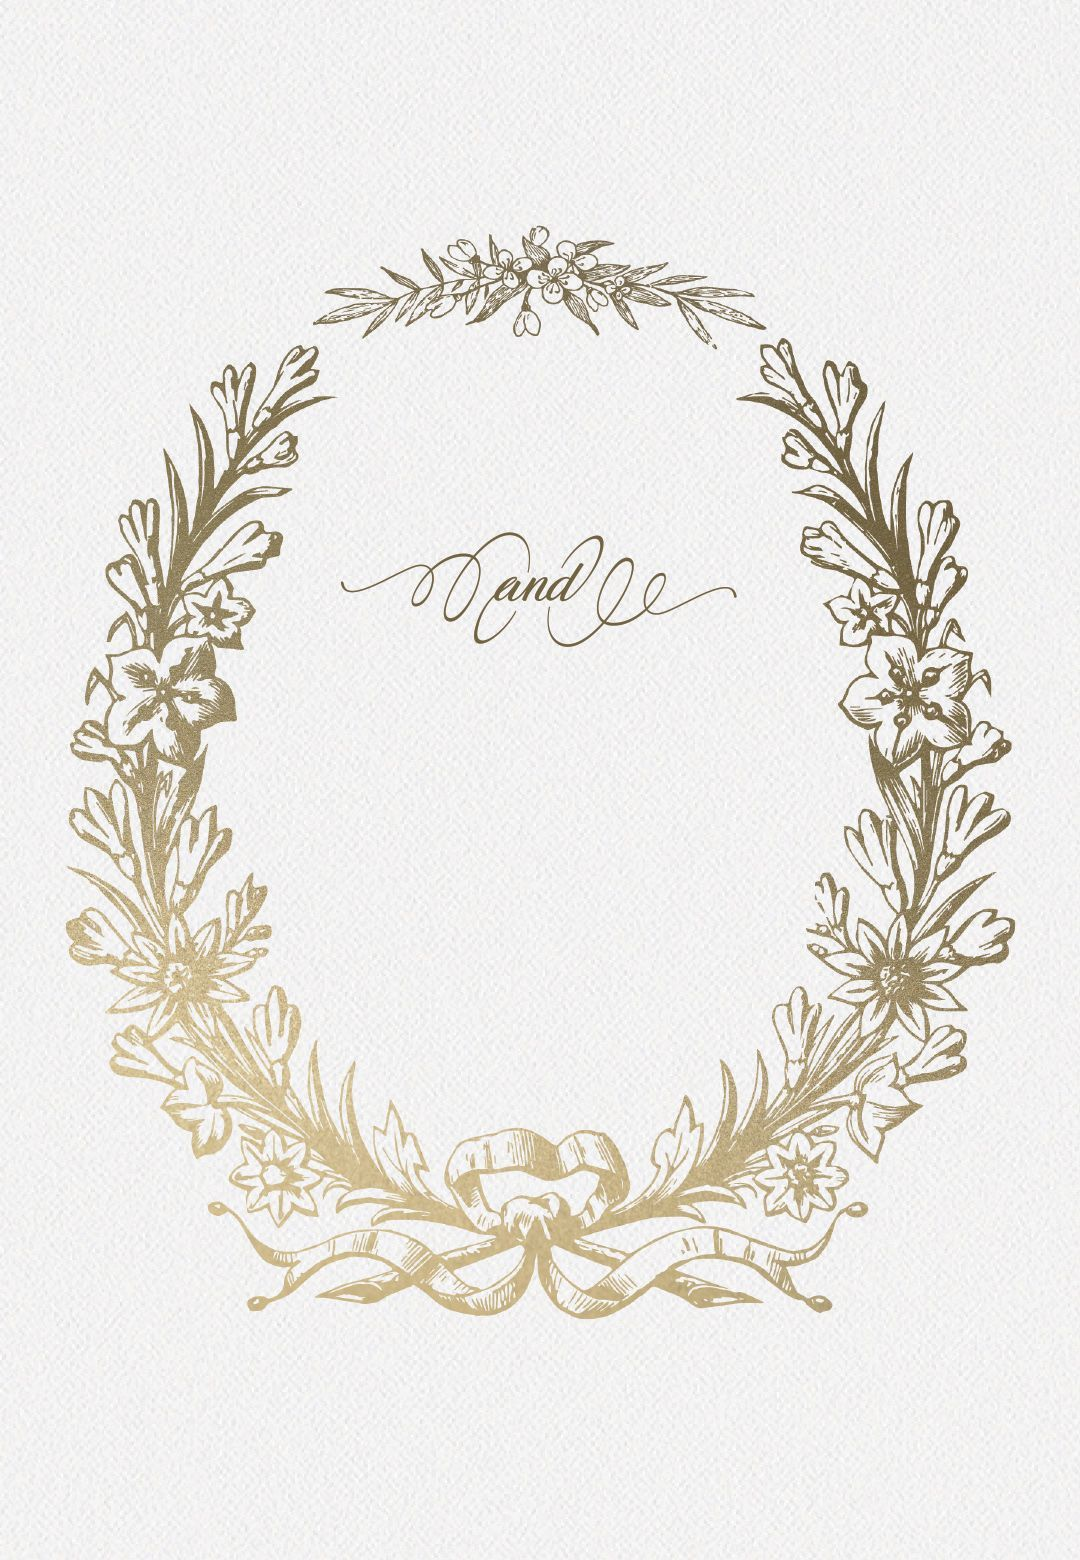 005 Awesome Blank Wedding Invitation Template High Resolution  Templates Free Download Printable Royal BlueFull